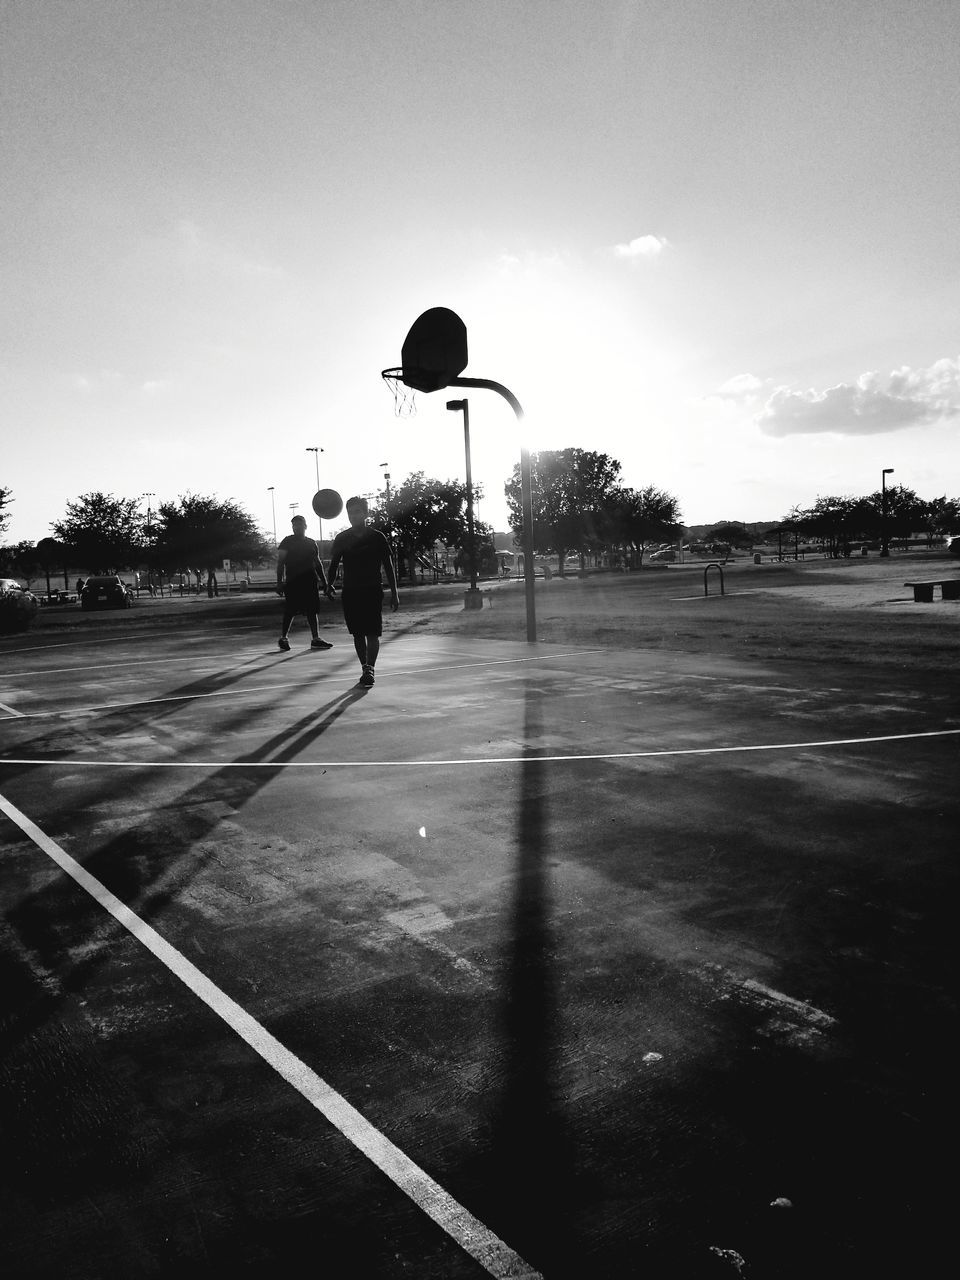 Players Playing At Basketball Court In Sunny Day